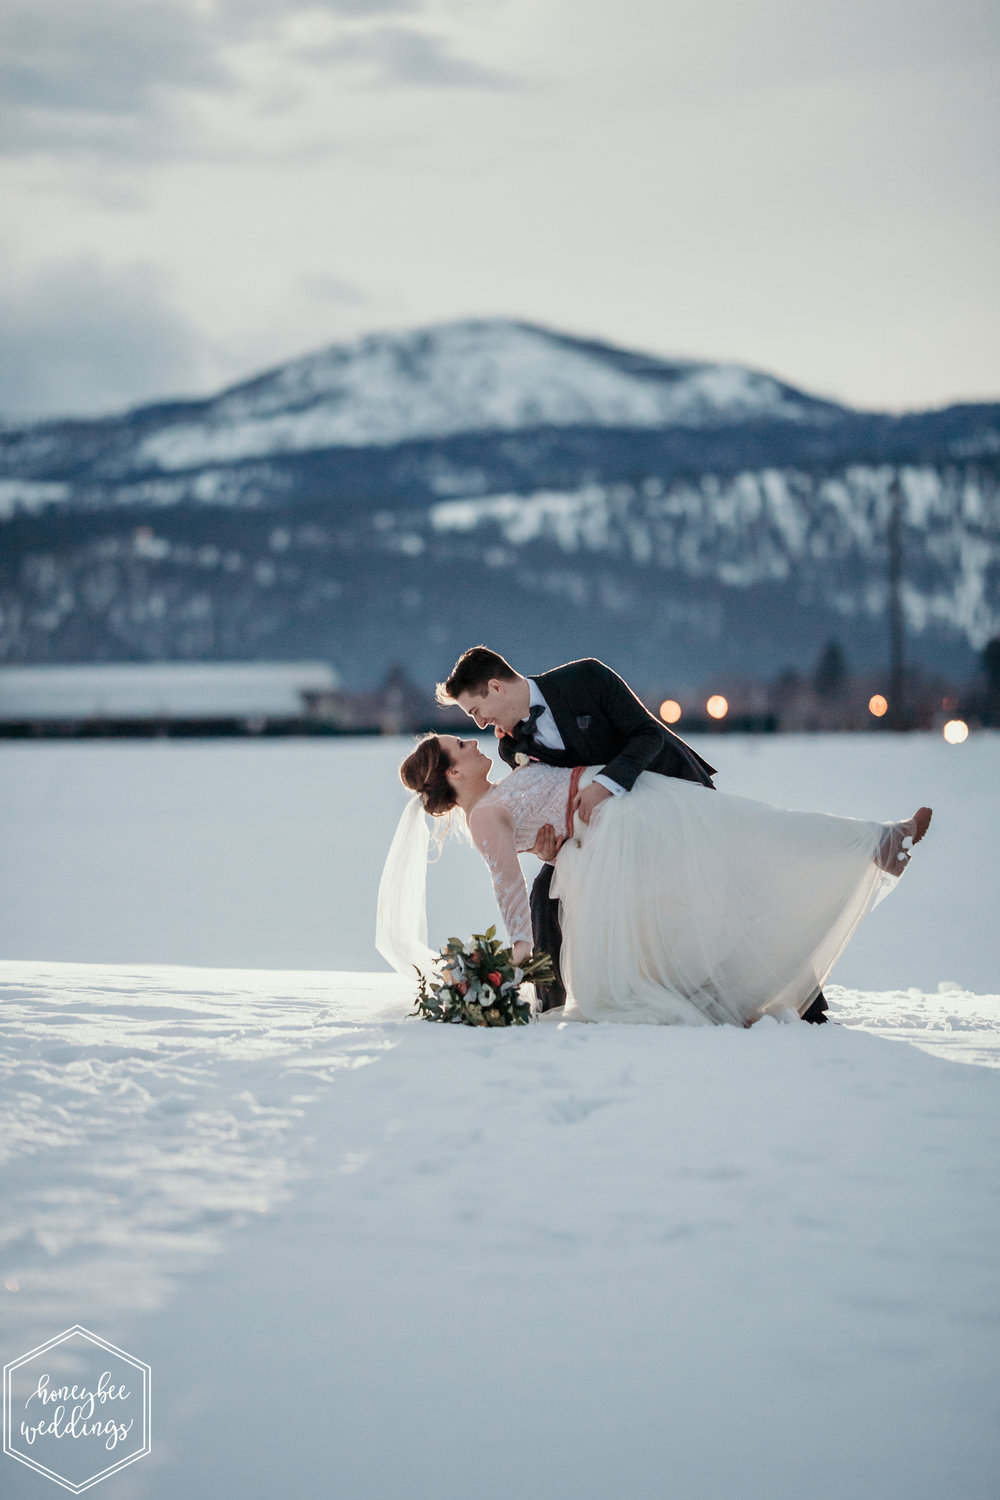 0271Montana Wedding Photographer_Montana winter wedding_Wedding at Fort Missoula_Meri & Carter_December 31, 2015-22.jpg